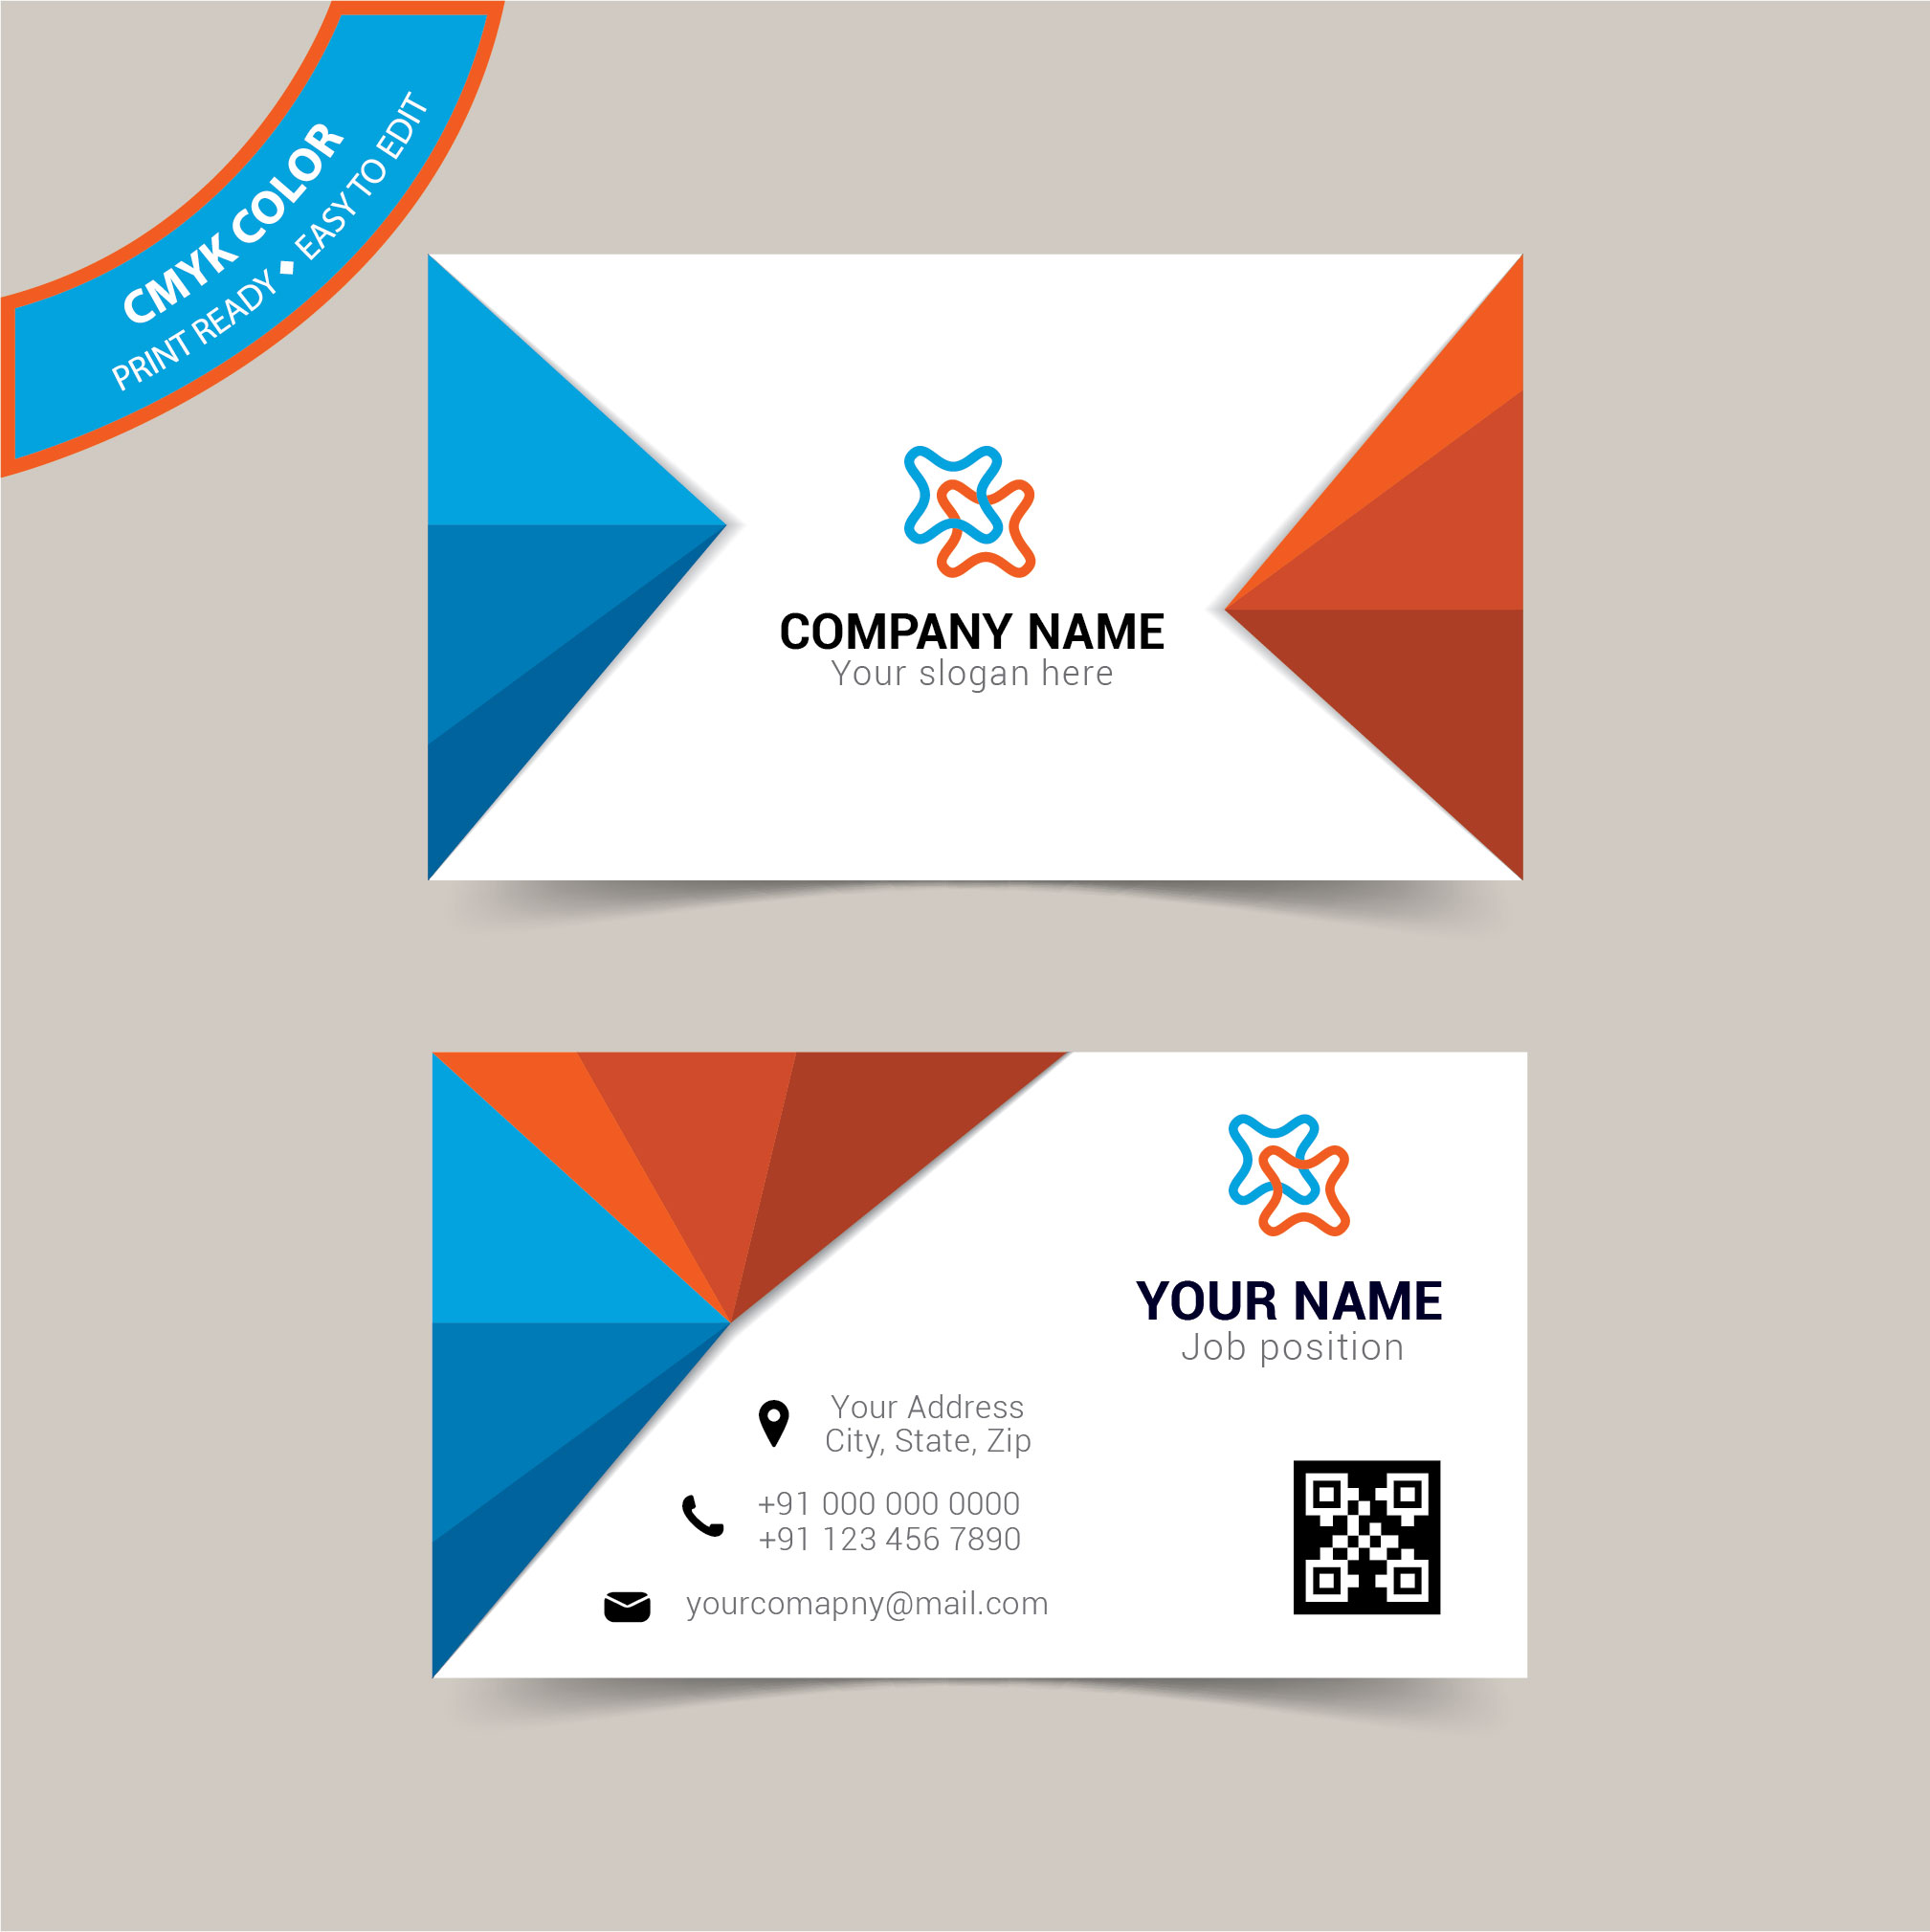 Double sided creative business card template free download wisxi business card business cards business card design business card template design templates flashek Gallery